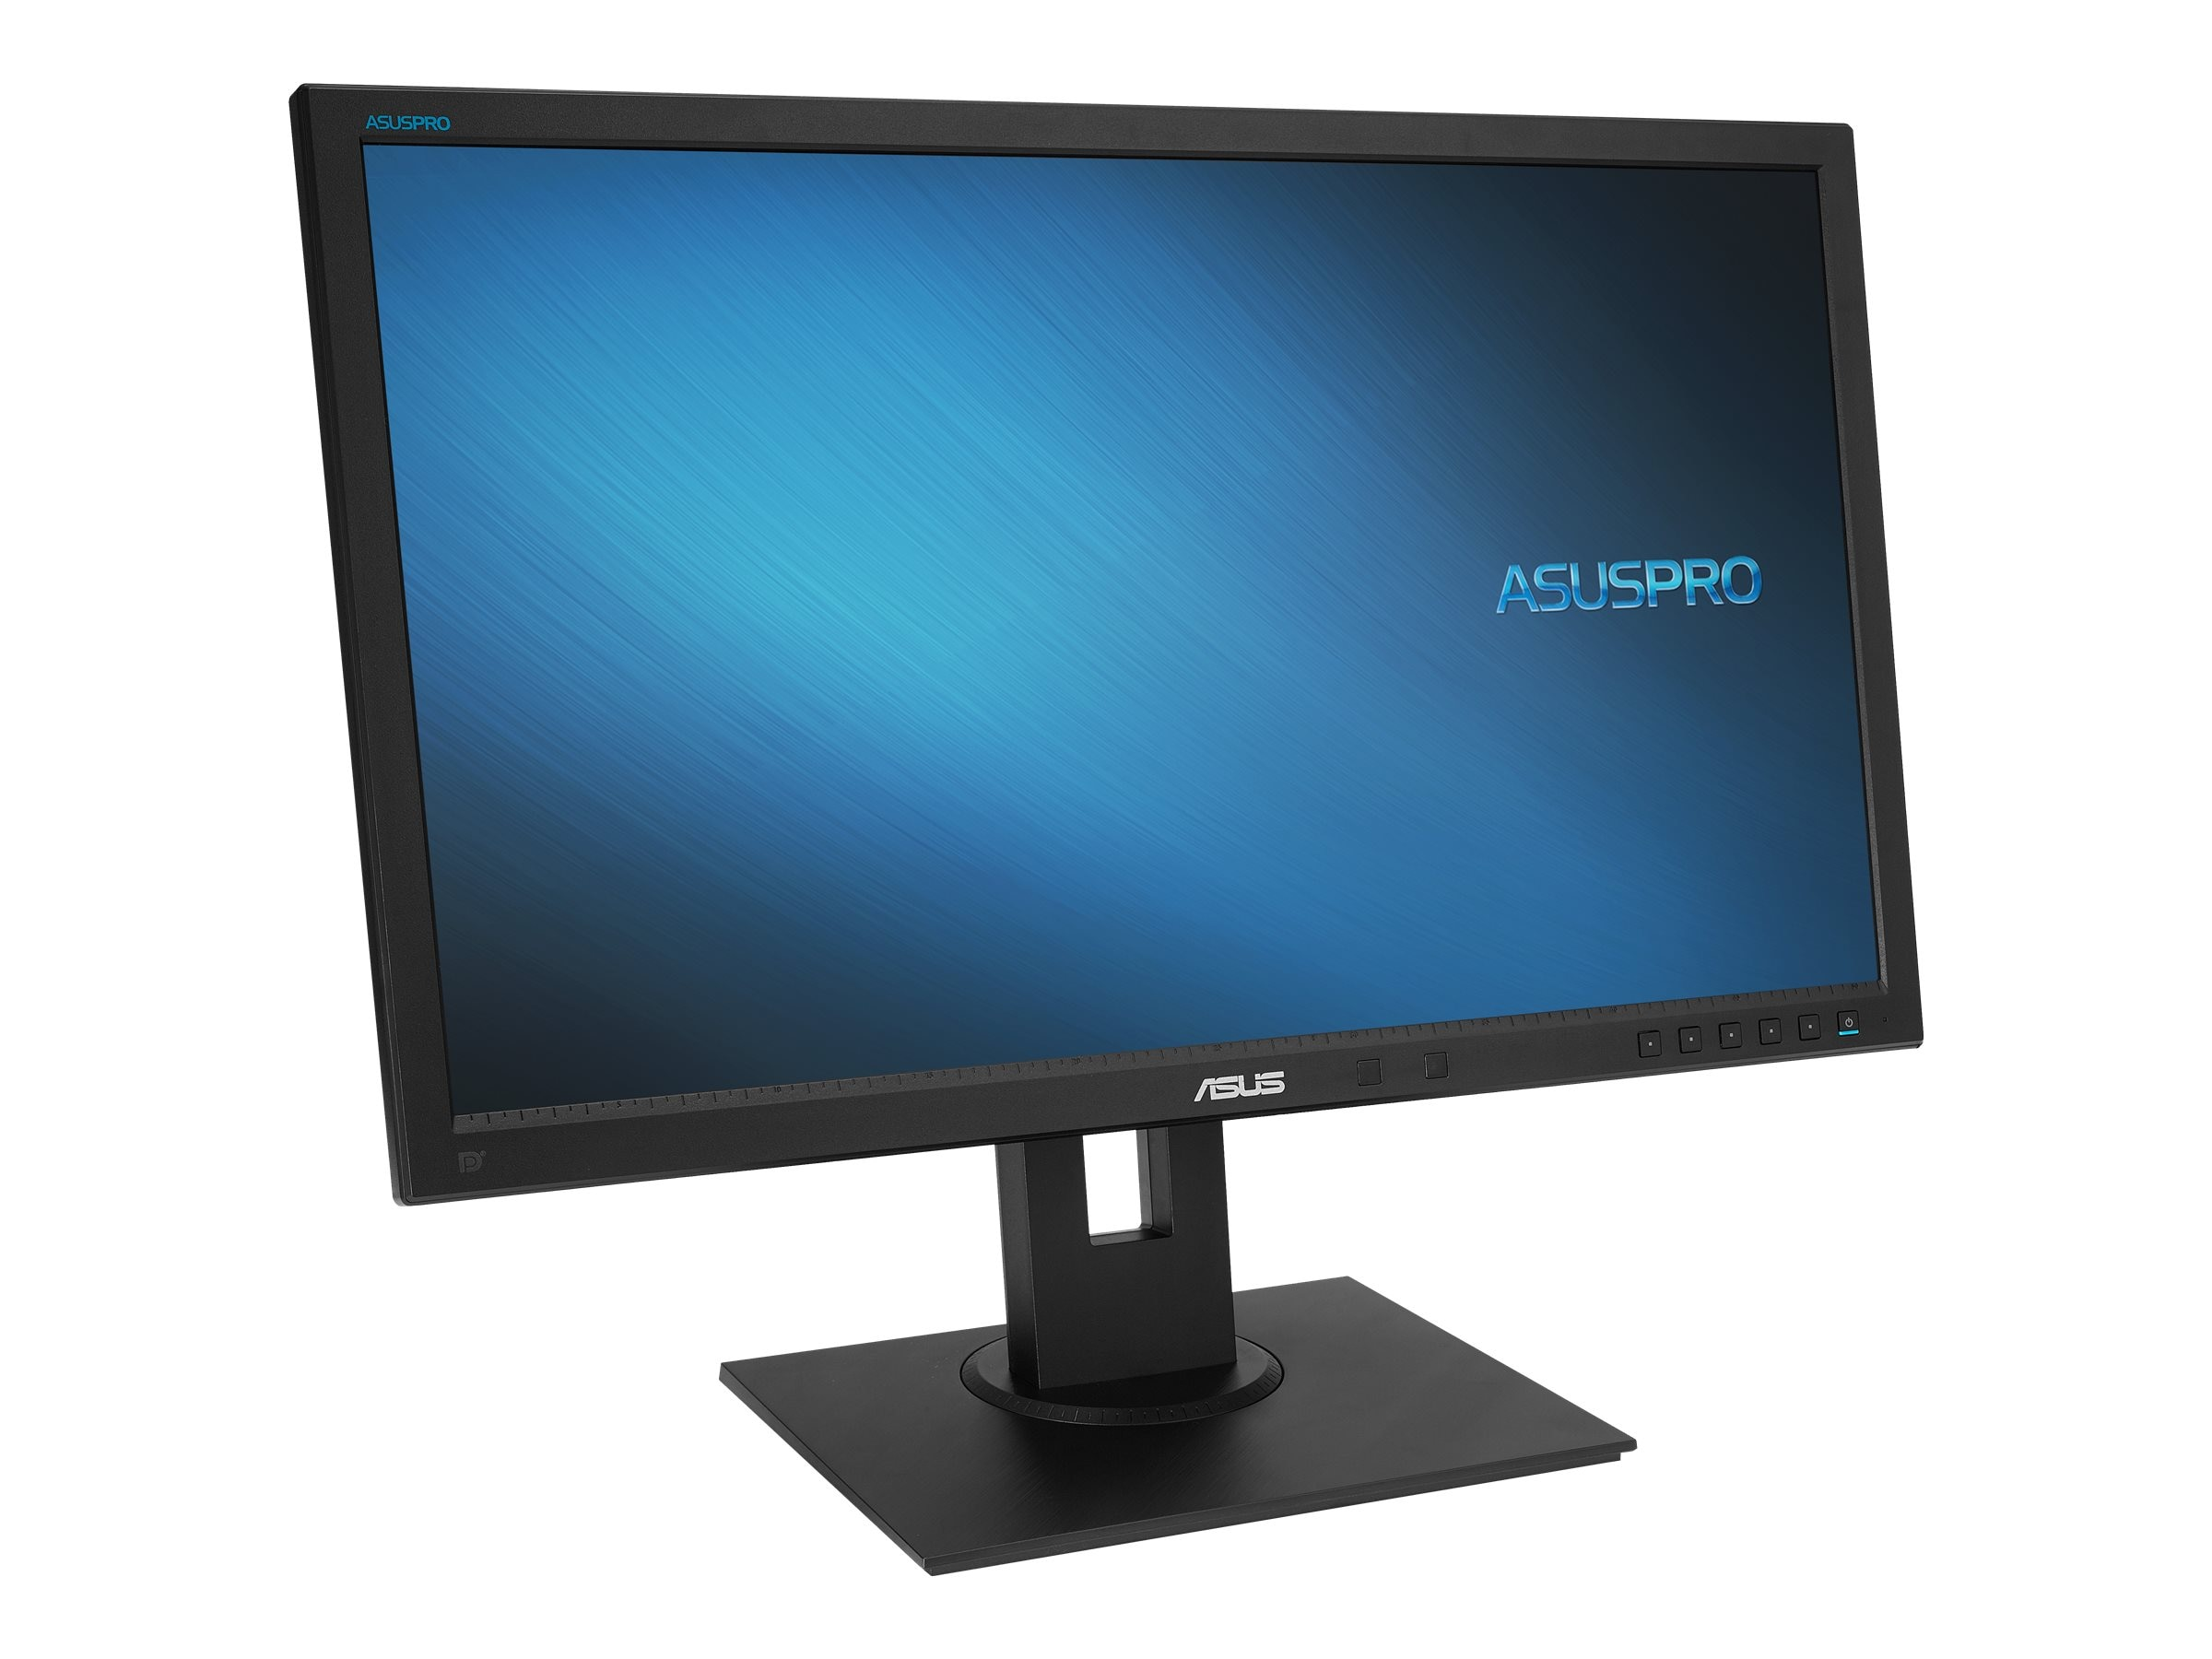 Asus 23 C623AQR Full HD LED-LCD Monitor, Black, C623AQR